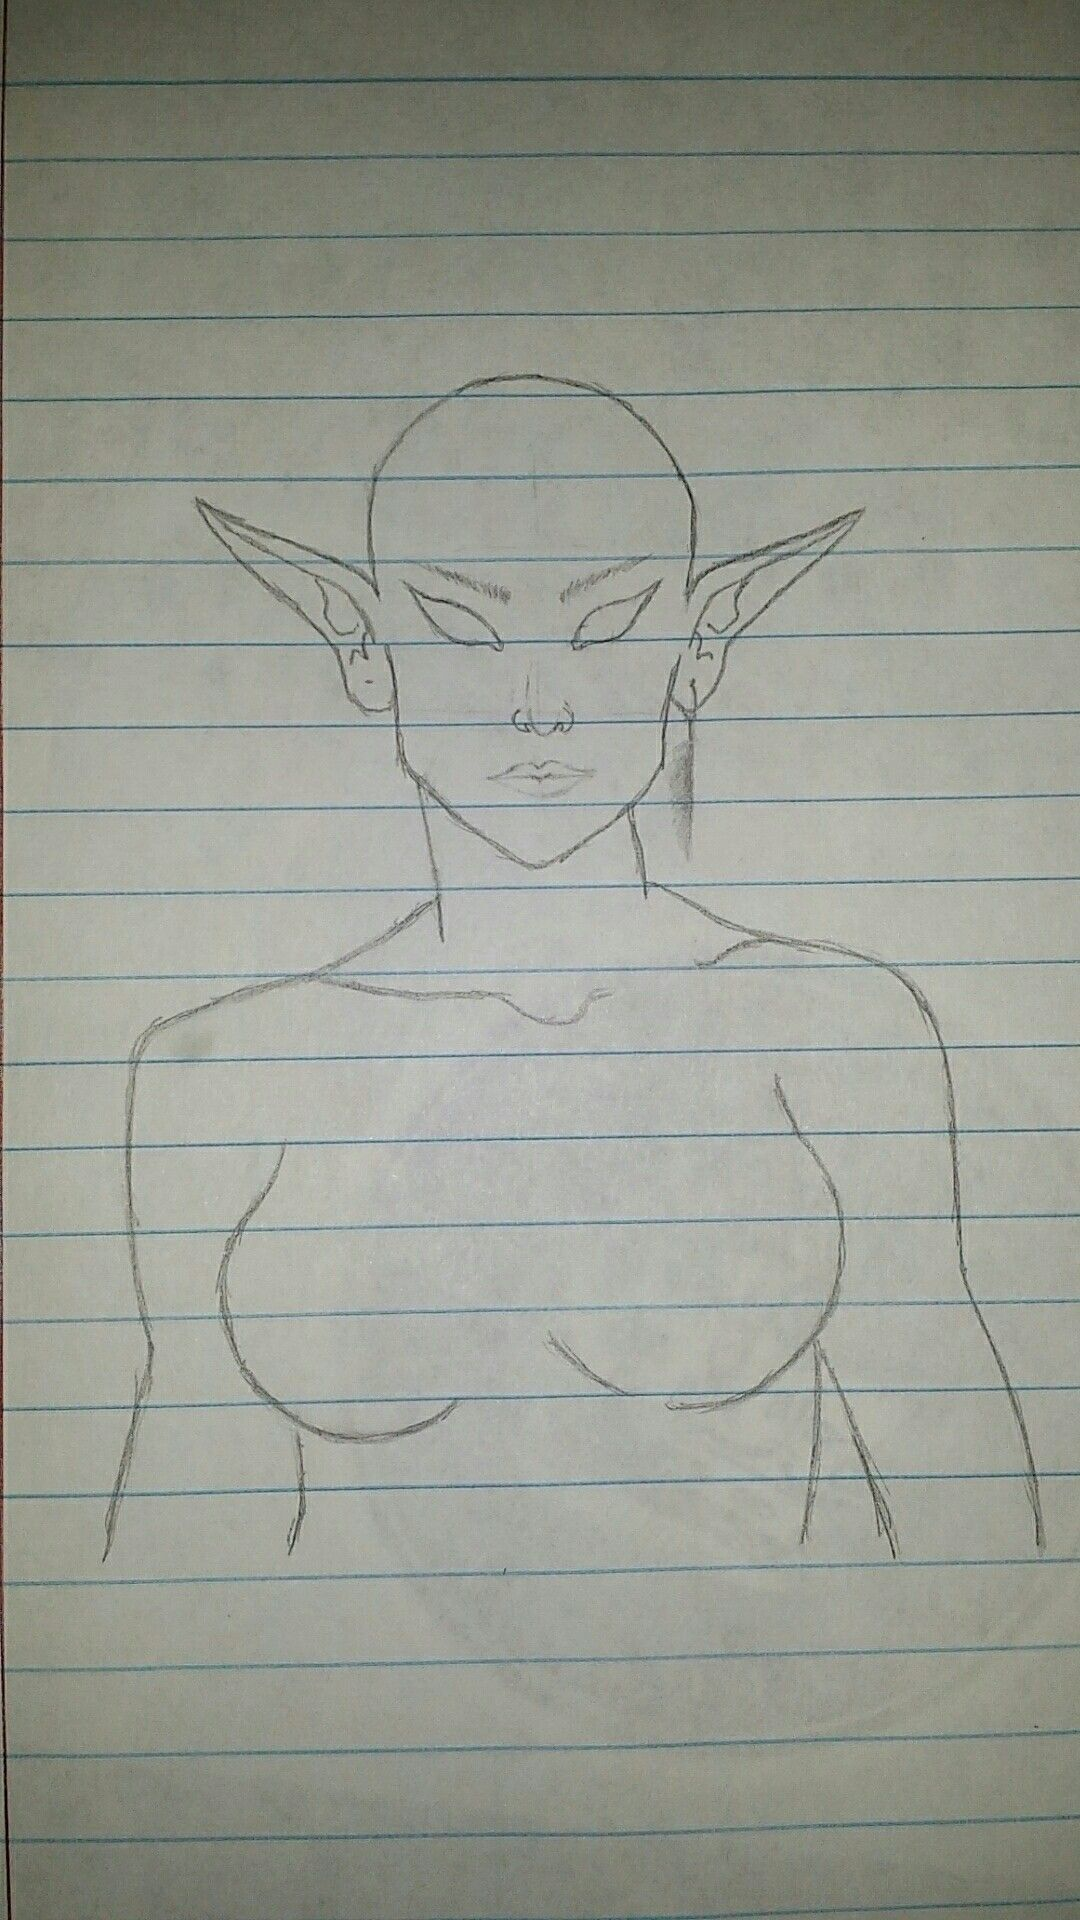 Dnd Elf Head And Face Template Couldnt Find A Good One Of These So I Created This Elftemplate Dndelftemplate